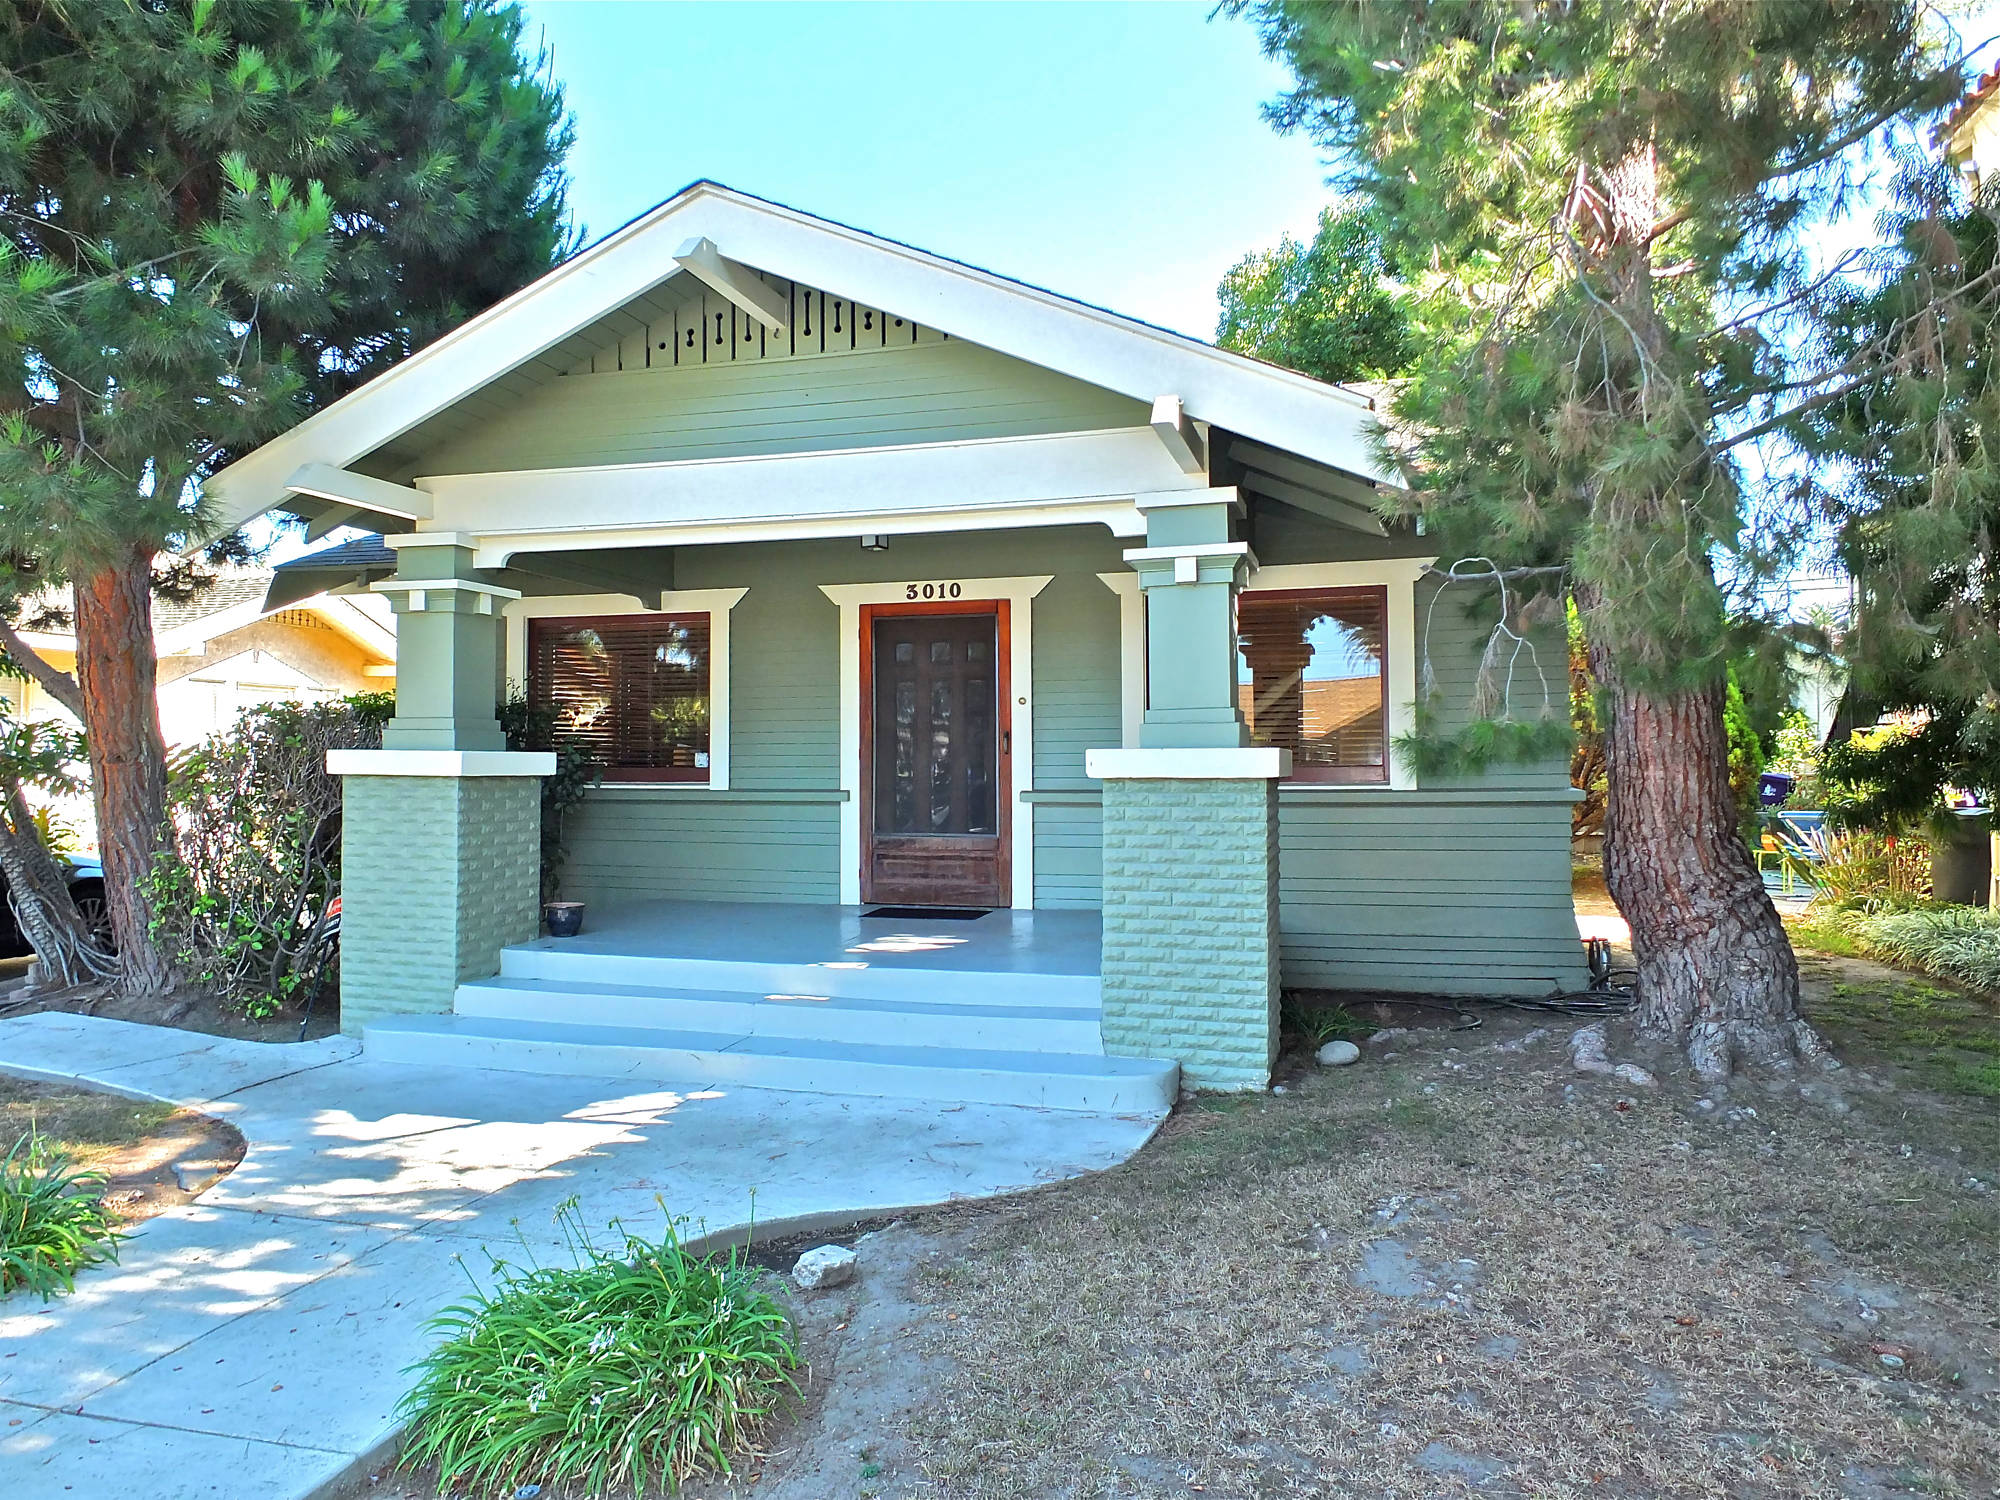 3010 E 5th Street Long Beach Rose Park South Neighborhood Envision Yourself In A Classic Craftsman Bungalow